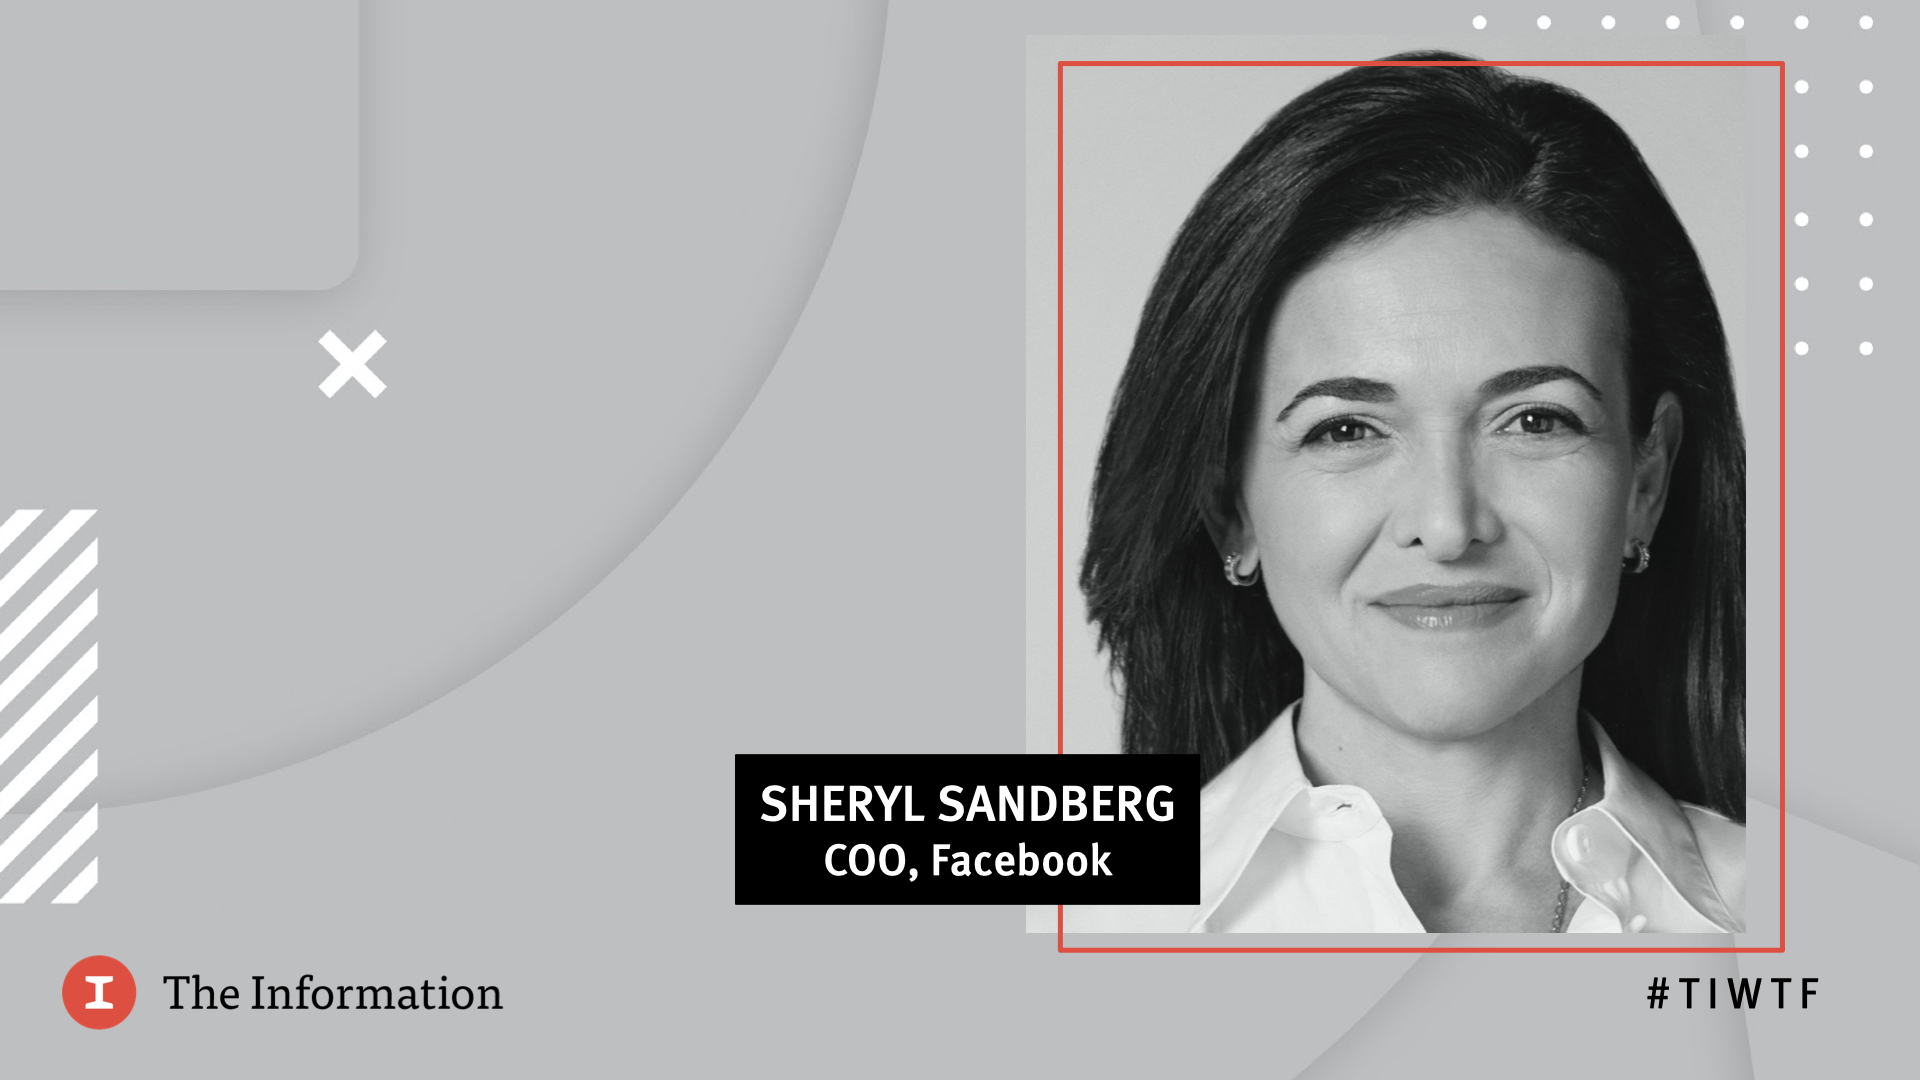 WTF 2020 - Facebook's COO Sheryl Sandberg in conversation with Jessica Lessin, Founder & CEO of The Information